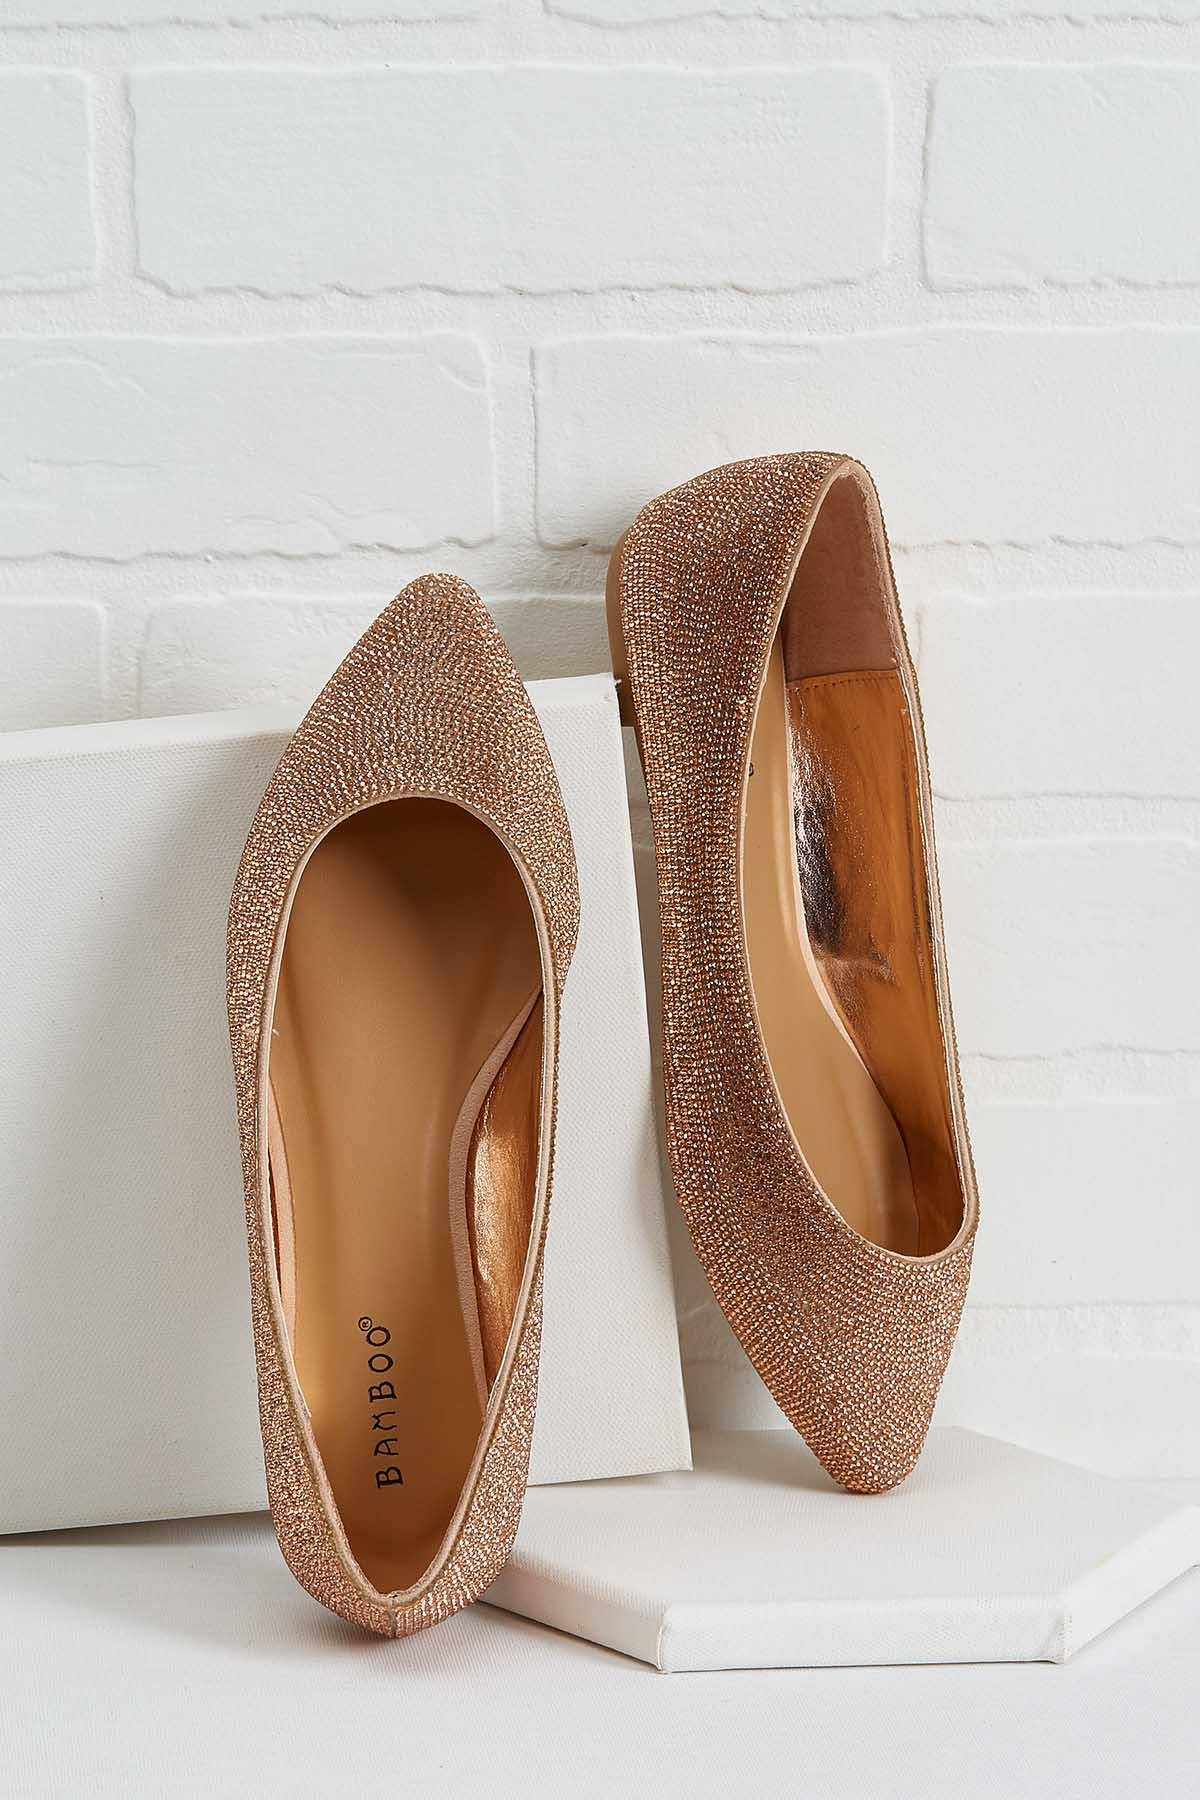 Twinkle Toes Flats